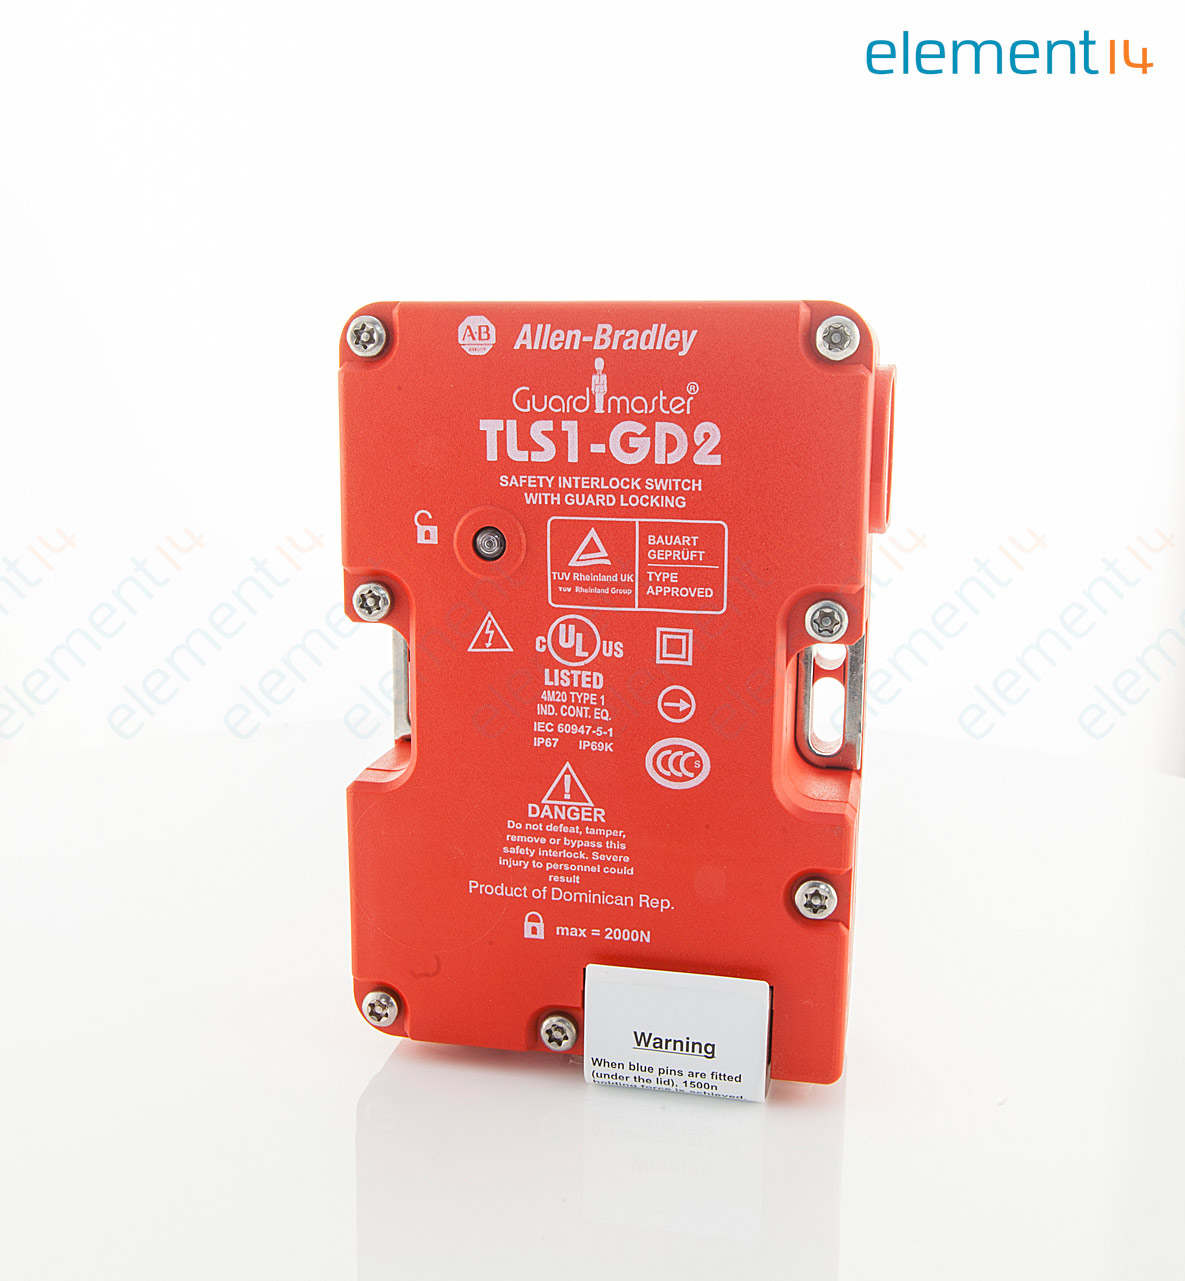 GUARDMASTER 440G T27121 big 01 440g t27121 guardmaster, safety interlock switch, screw, 500 v, 5 tls1-gd2 wiring diagram at gsmx.co